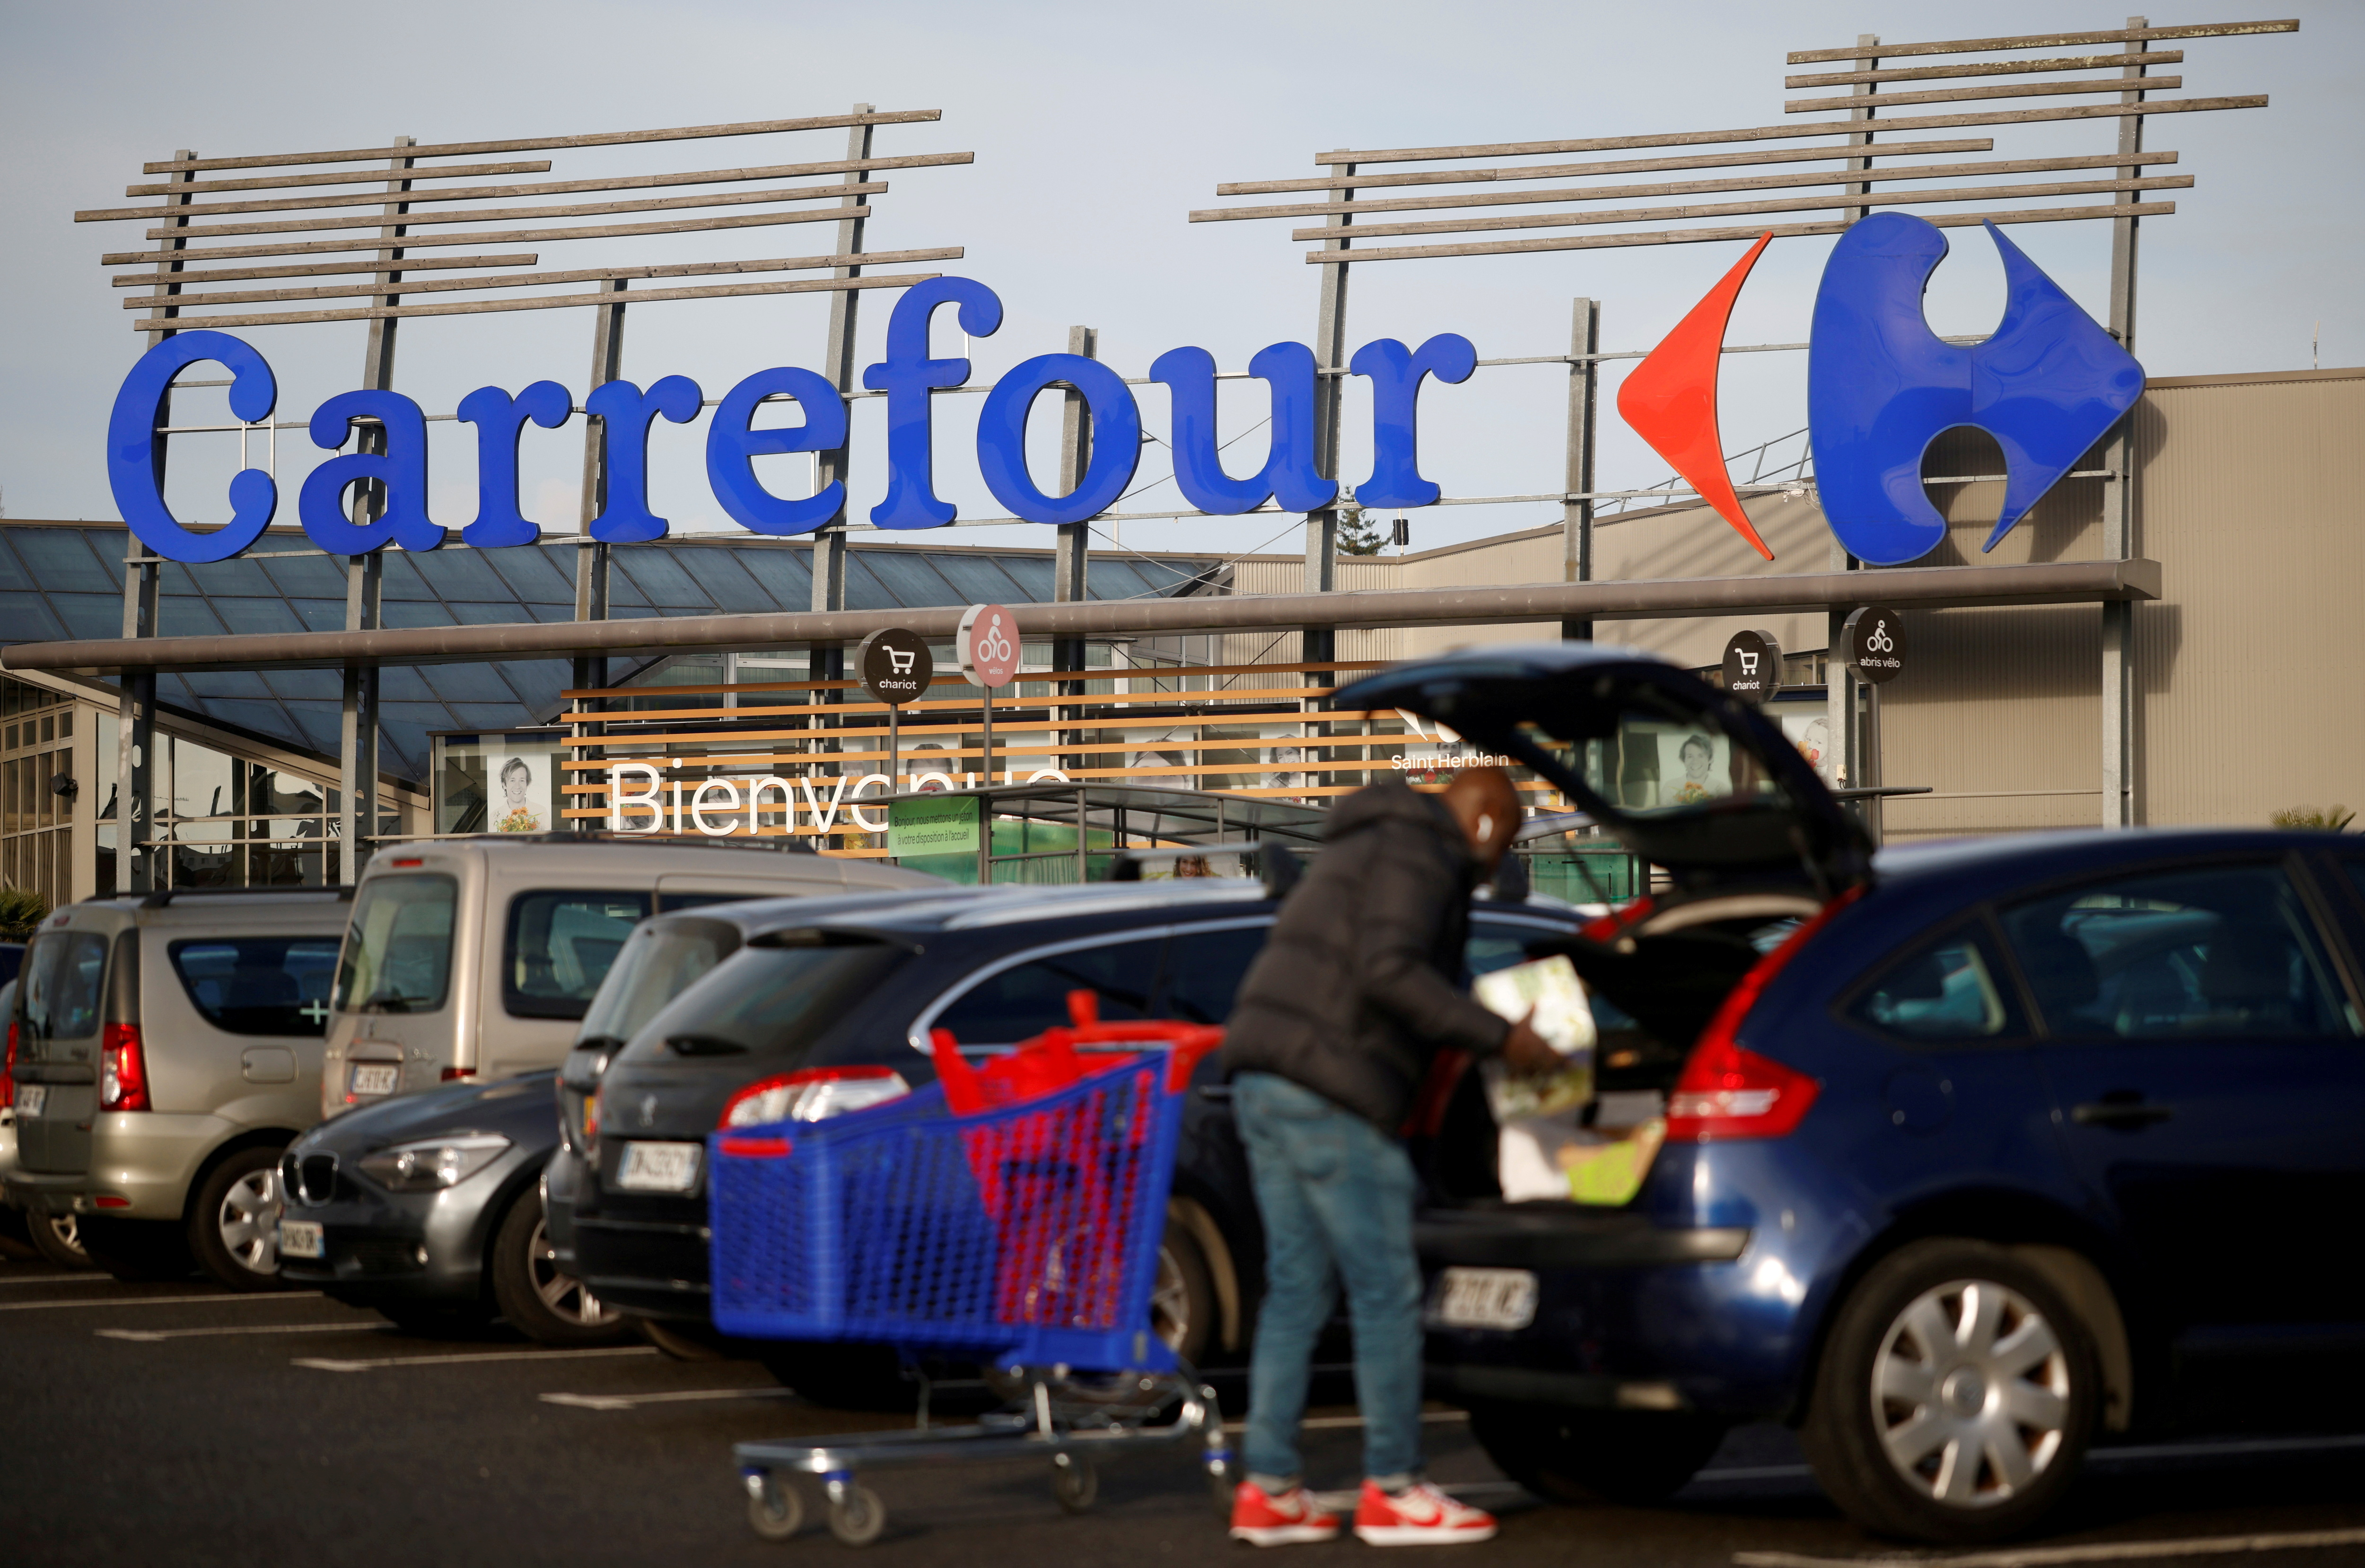 A customer empties his trolley in front of a Carrefour Hypermarket store in Saint-Herblain near Nantes, France January 15, 2021. REUTERS/Stephane Mahe/File Photo